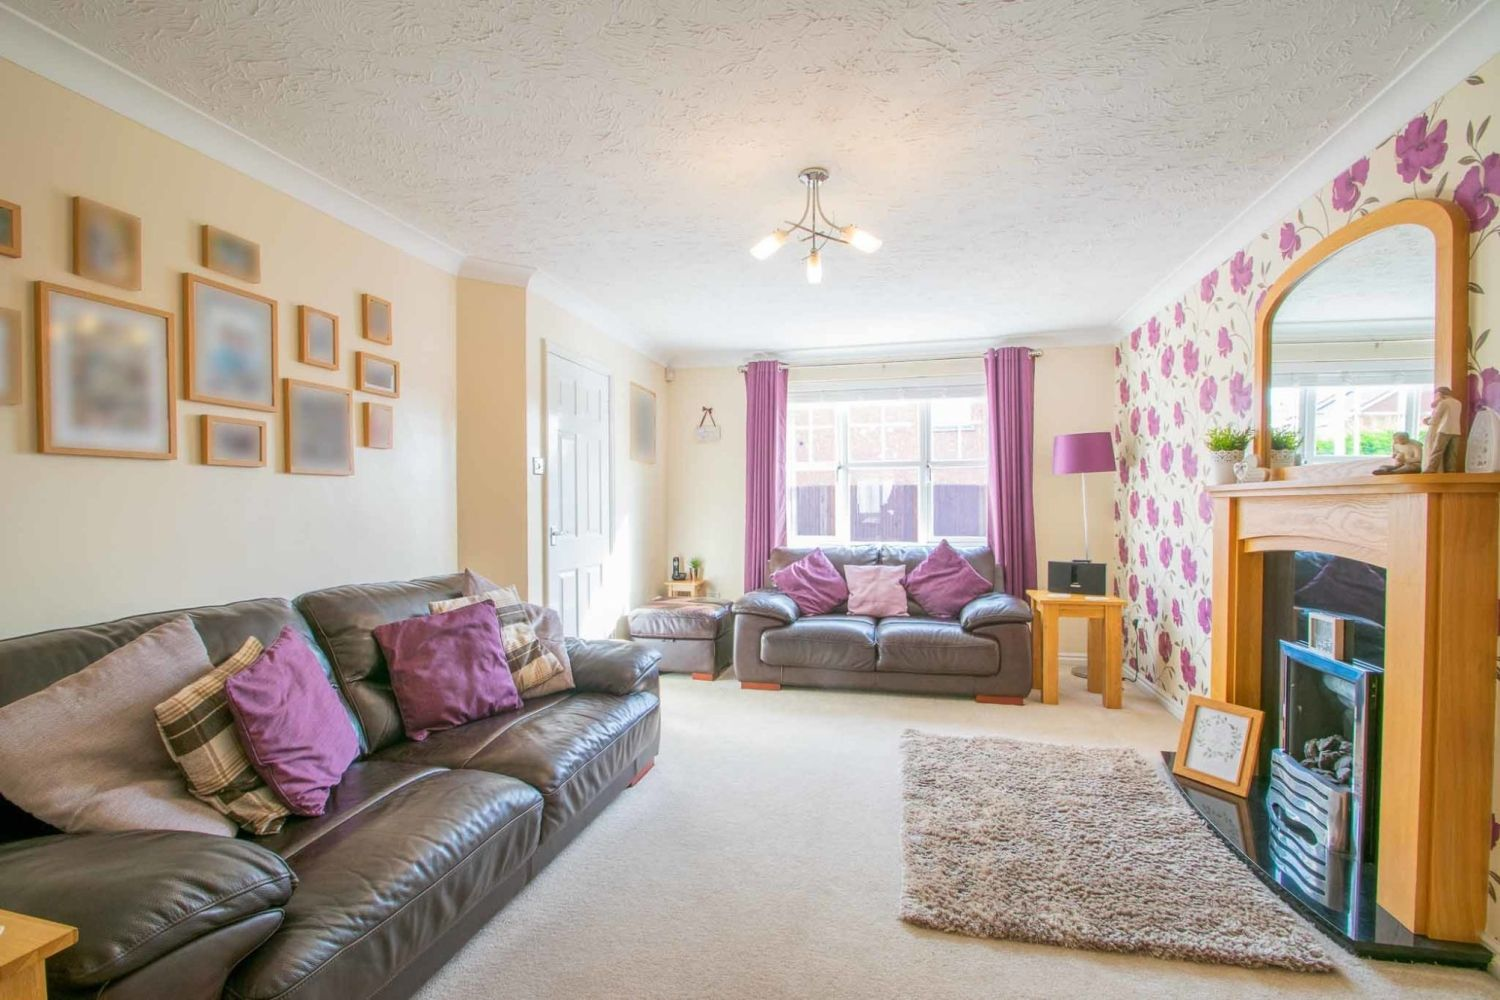 3 bed detached for sale in Batchelor Close, Amblecote 2